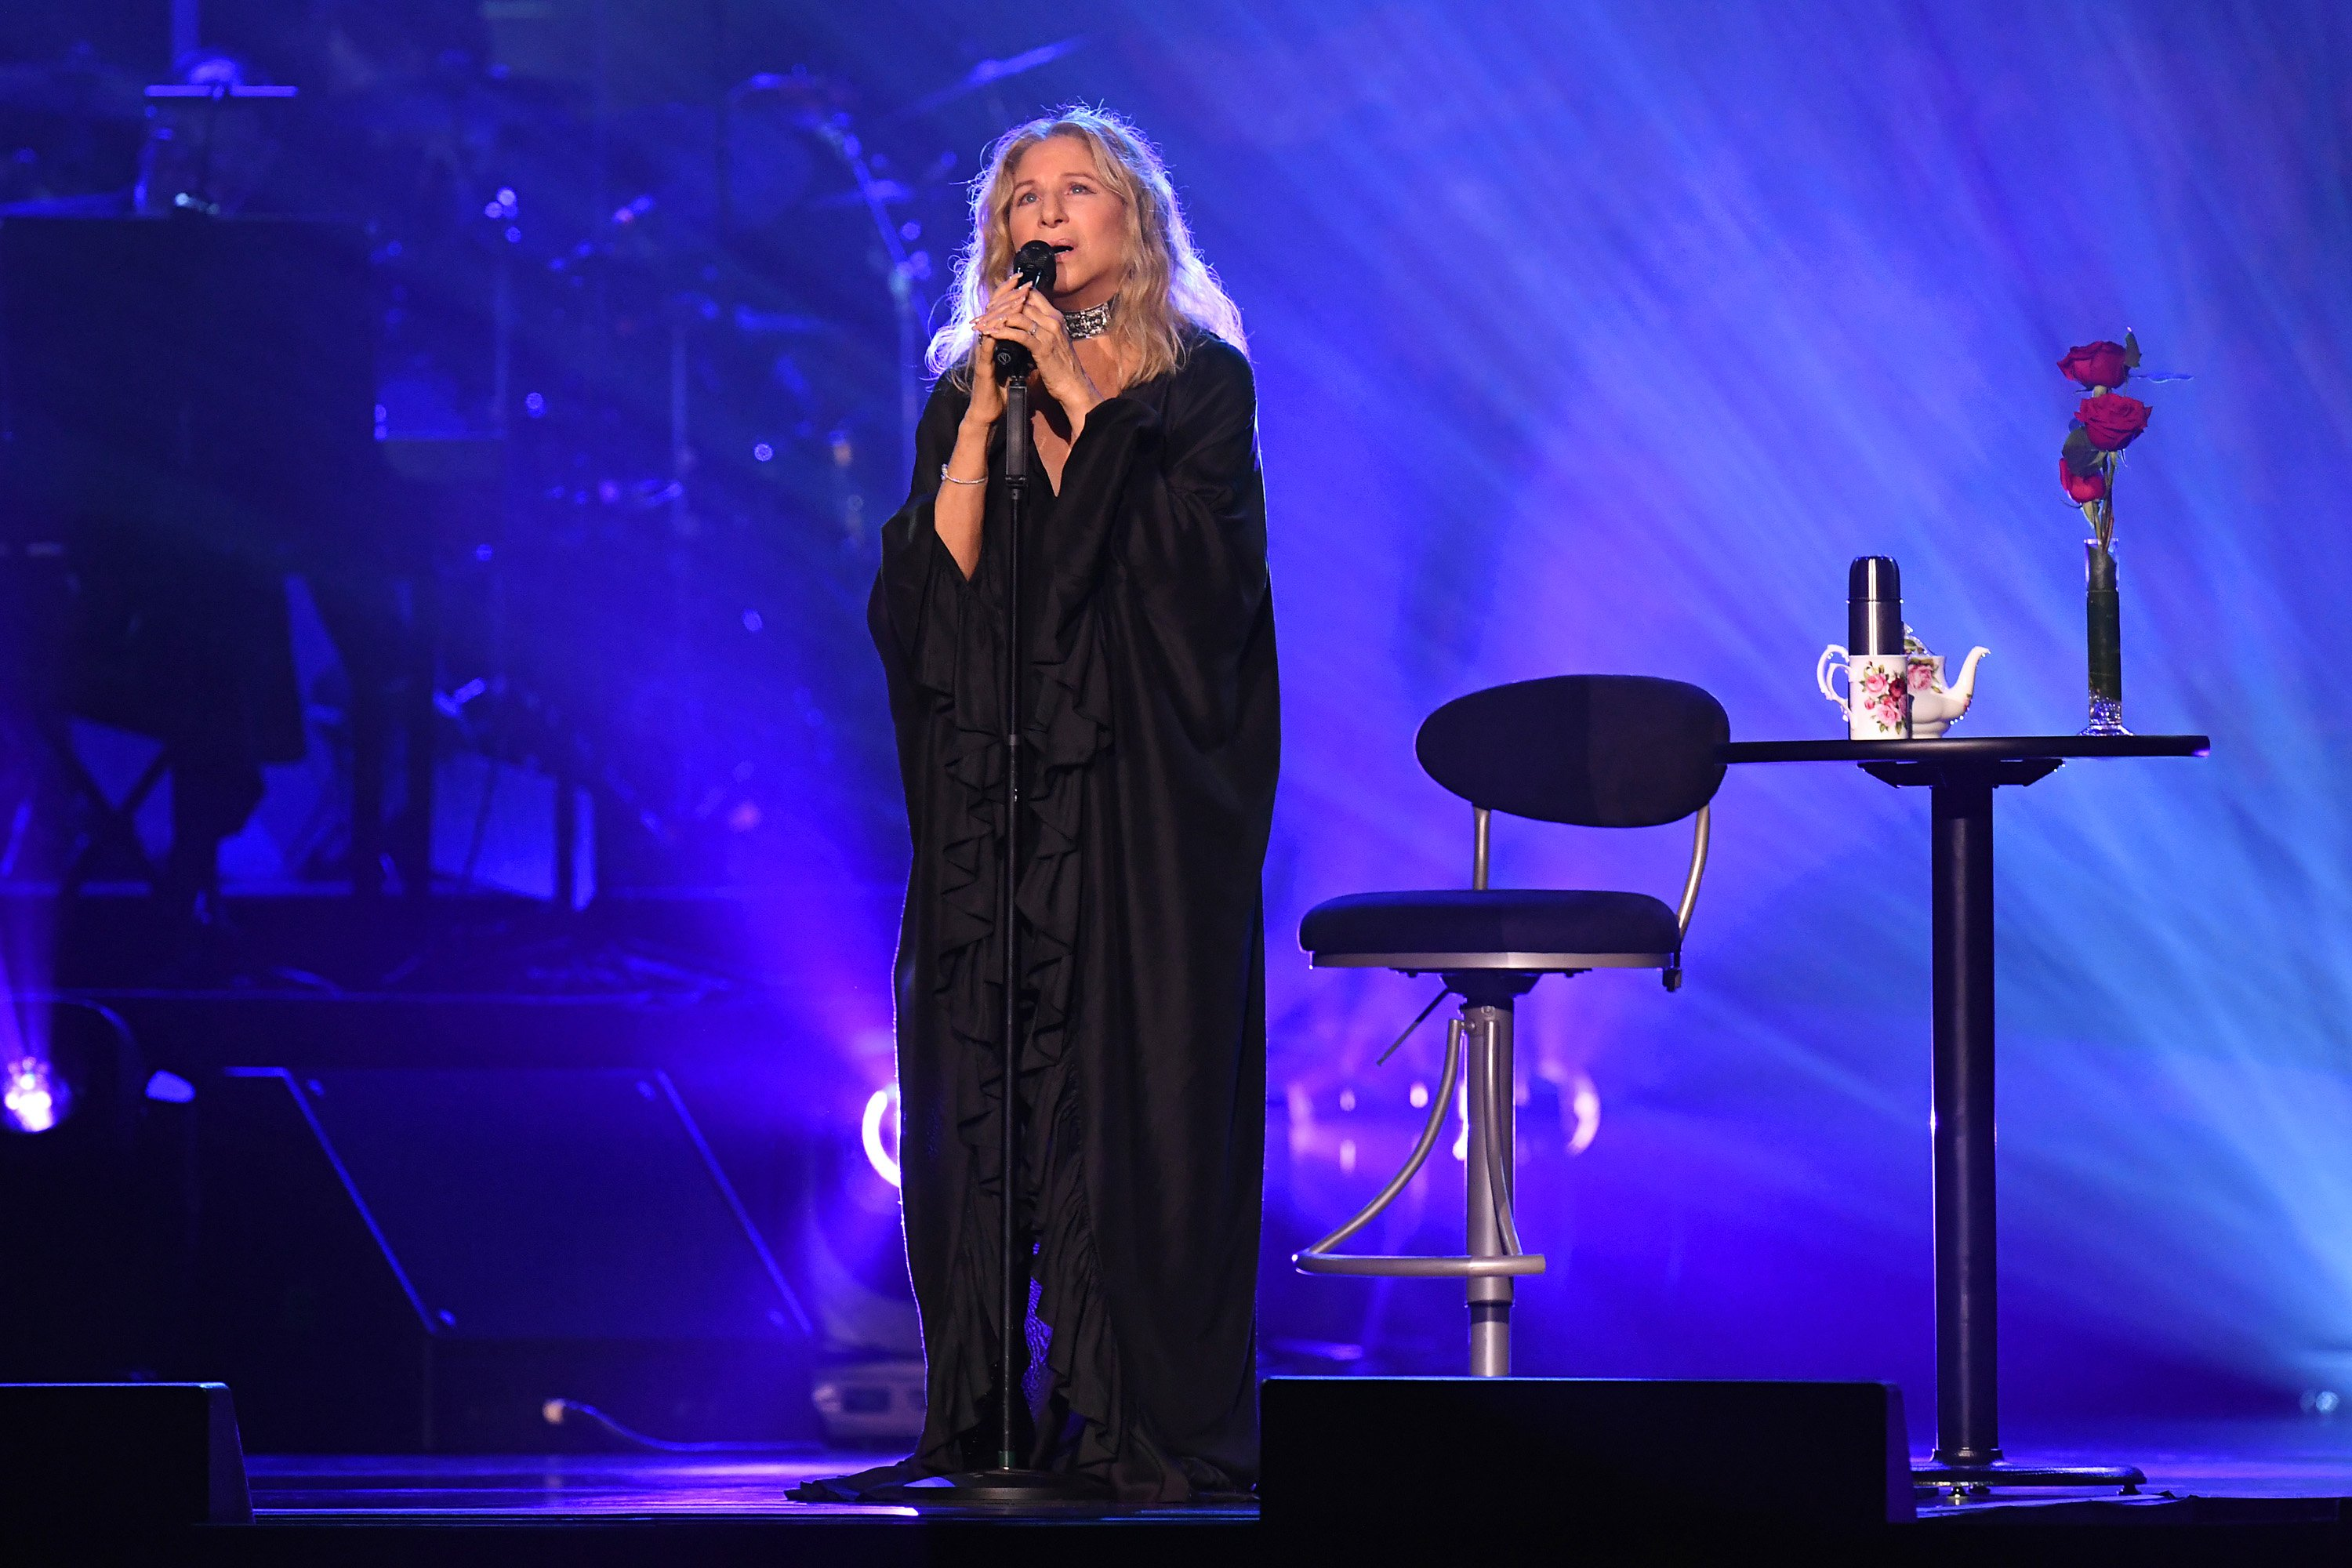 Barbra Streisand performs onstage at United Center on August 06, 2019 in Chicago, Illinois. | Source: Getty Images